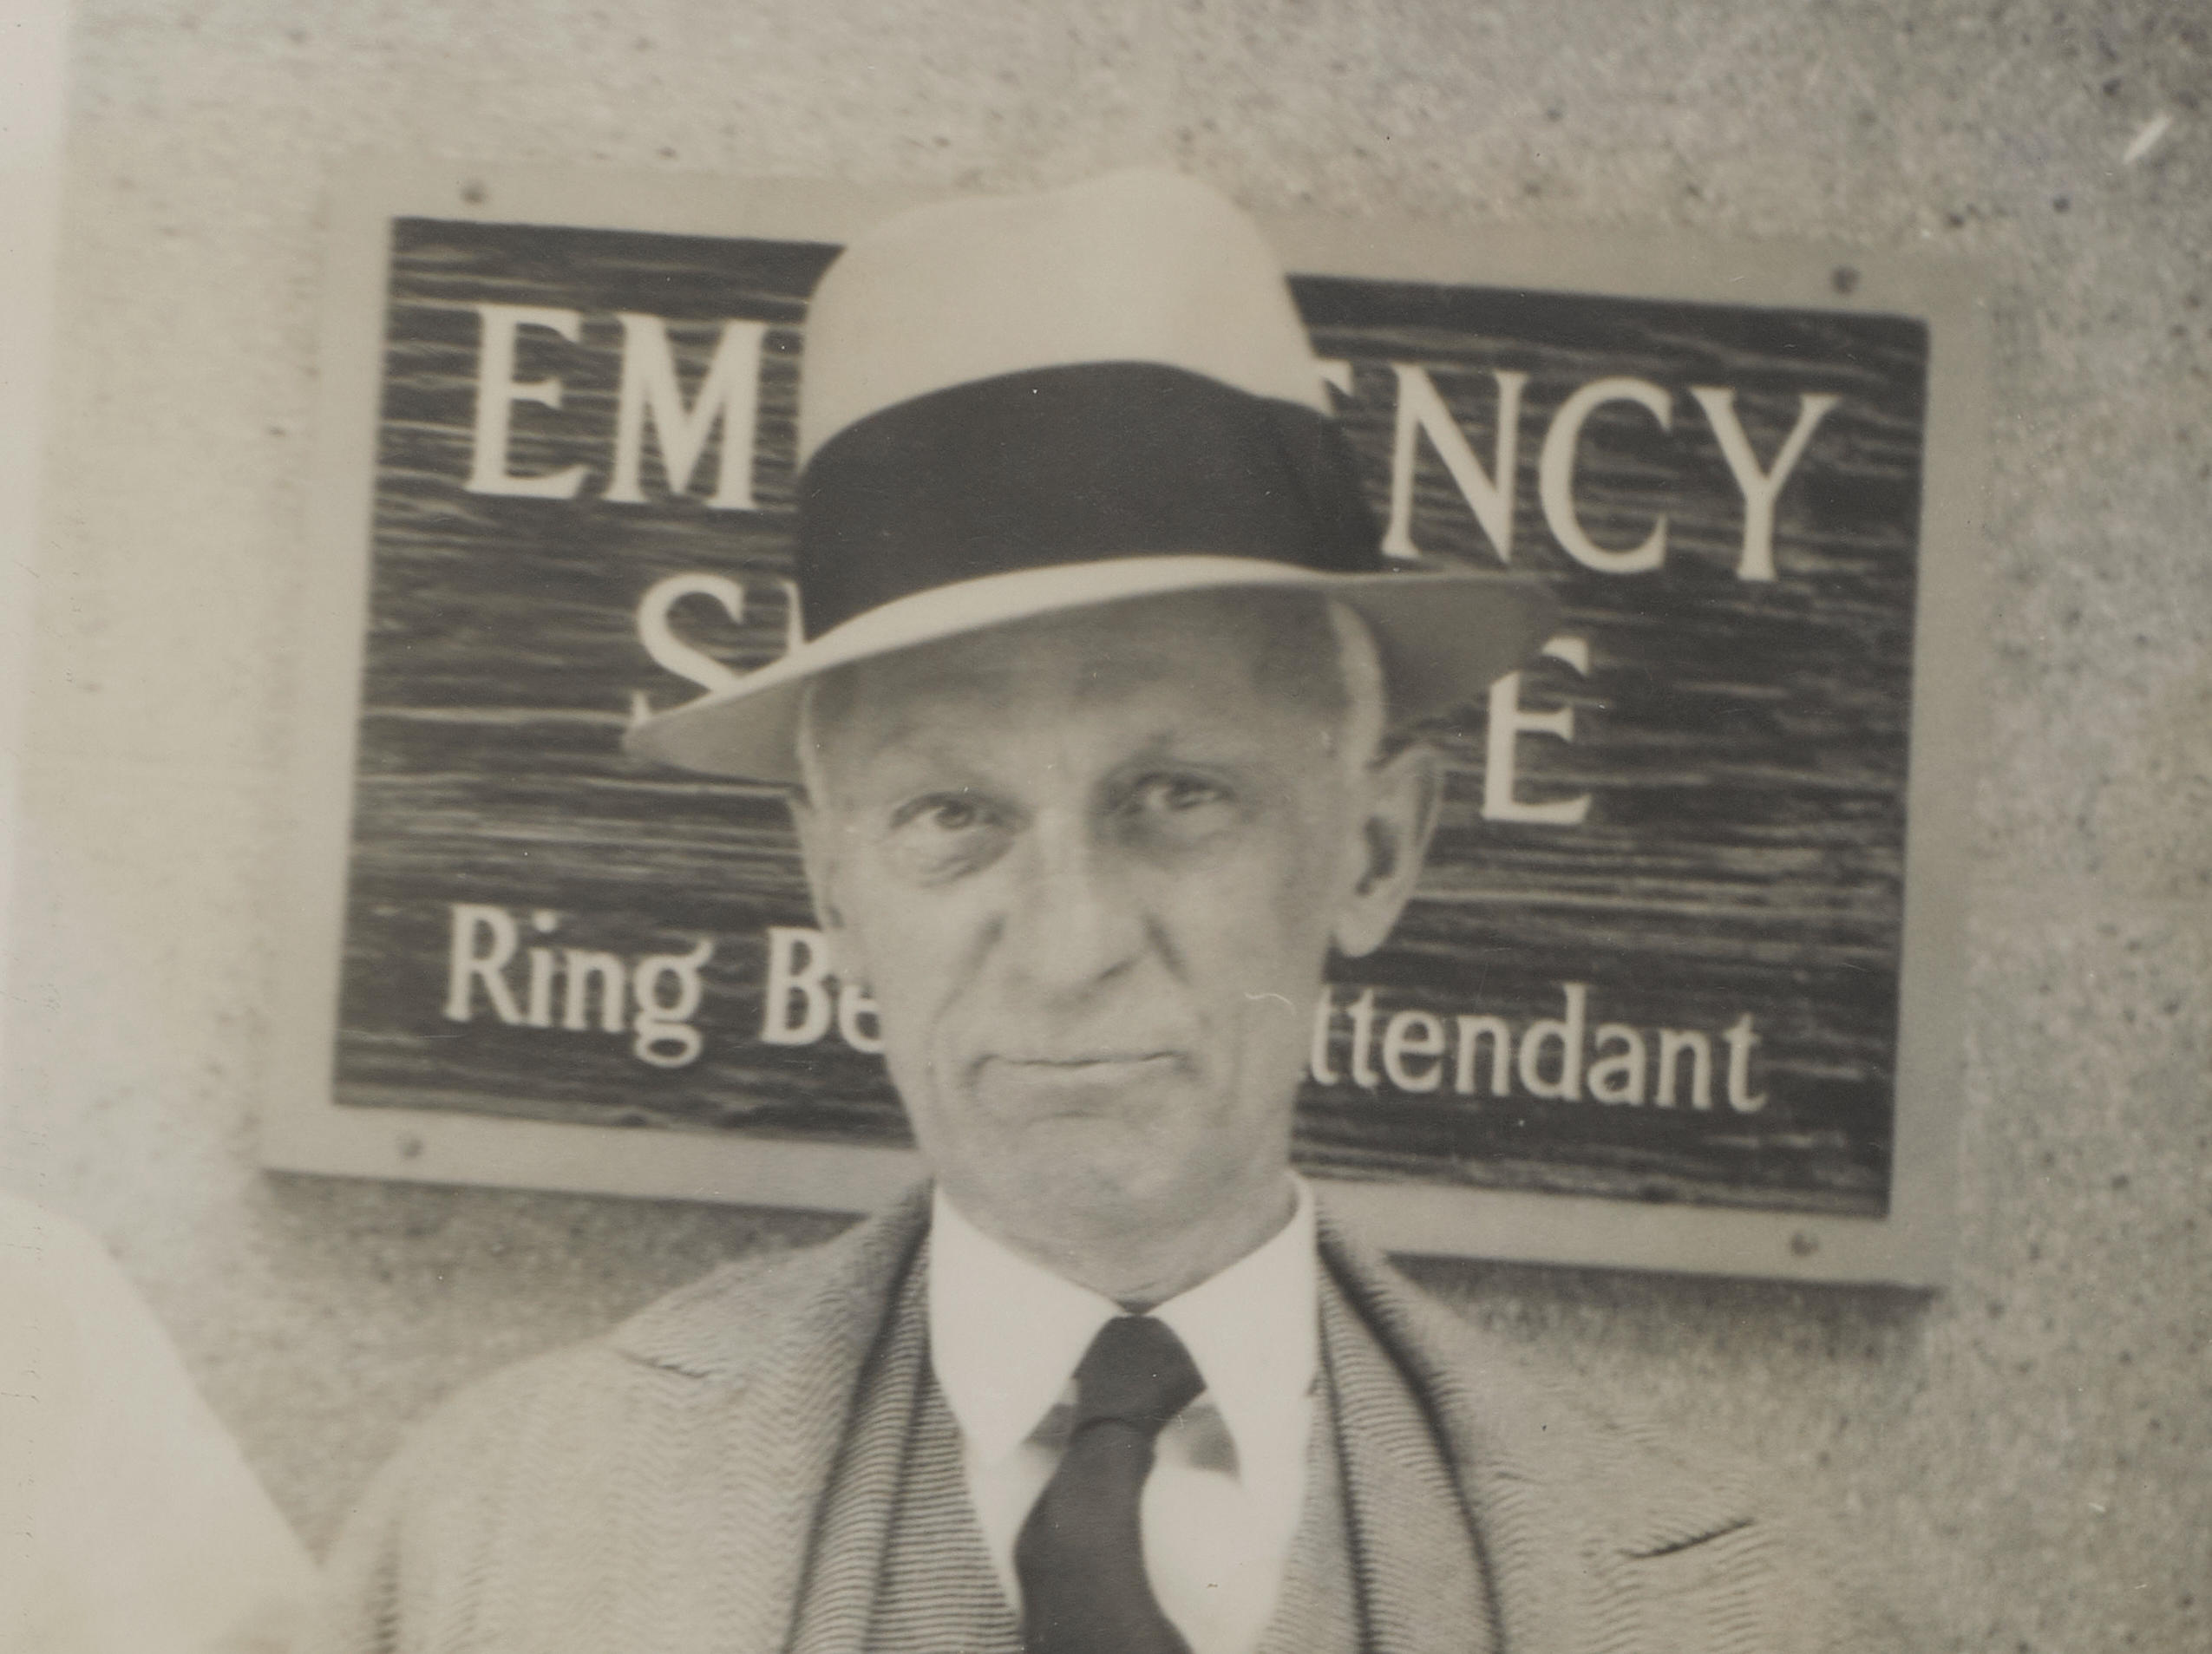 """""""UNMISTAKBLY AN EMERGENCY."""" CUSHING, HARVEY. 1869-1939. Original Photograph annotated by Harvey Cushing, a 5 x 8 inch gelatin silver print depicting Cushing at the emergency entrance to New Haven Hospital, annotated in Cushing's hand """"unmistakably an emergency,"""" c. 1937"""